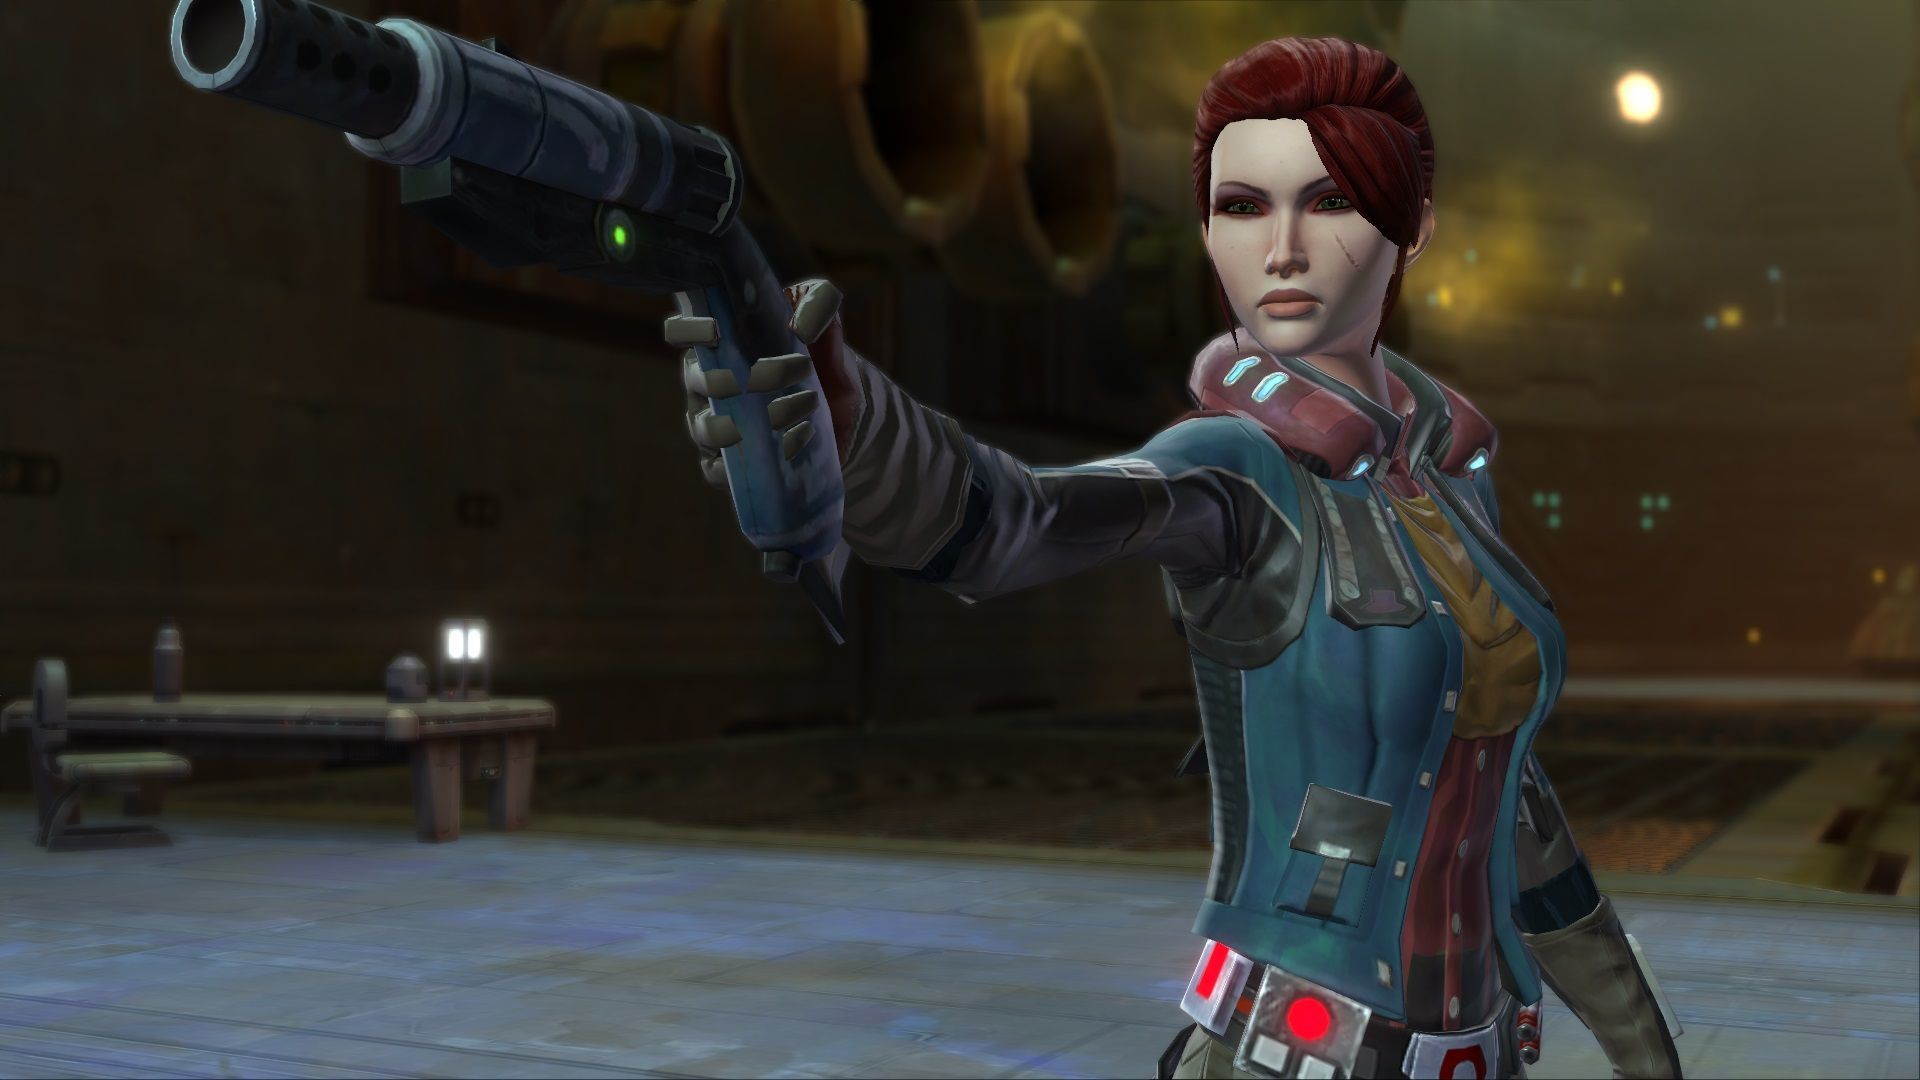 Star wars the old republic hot girl  sex image